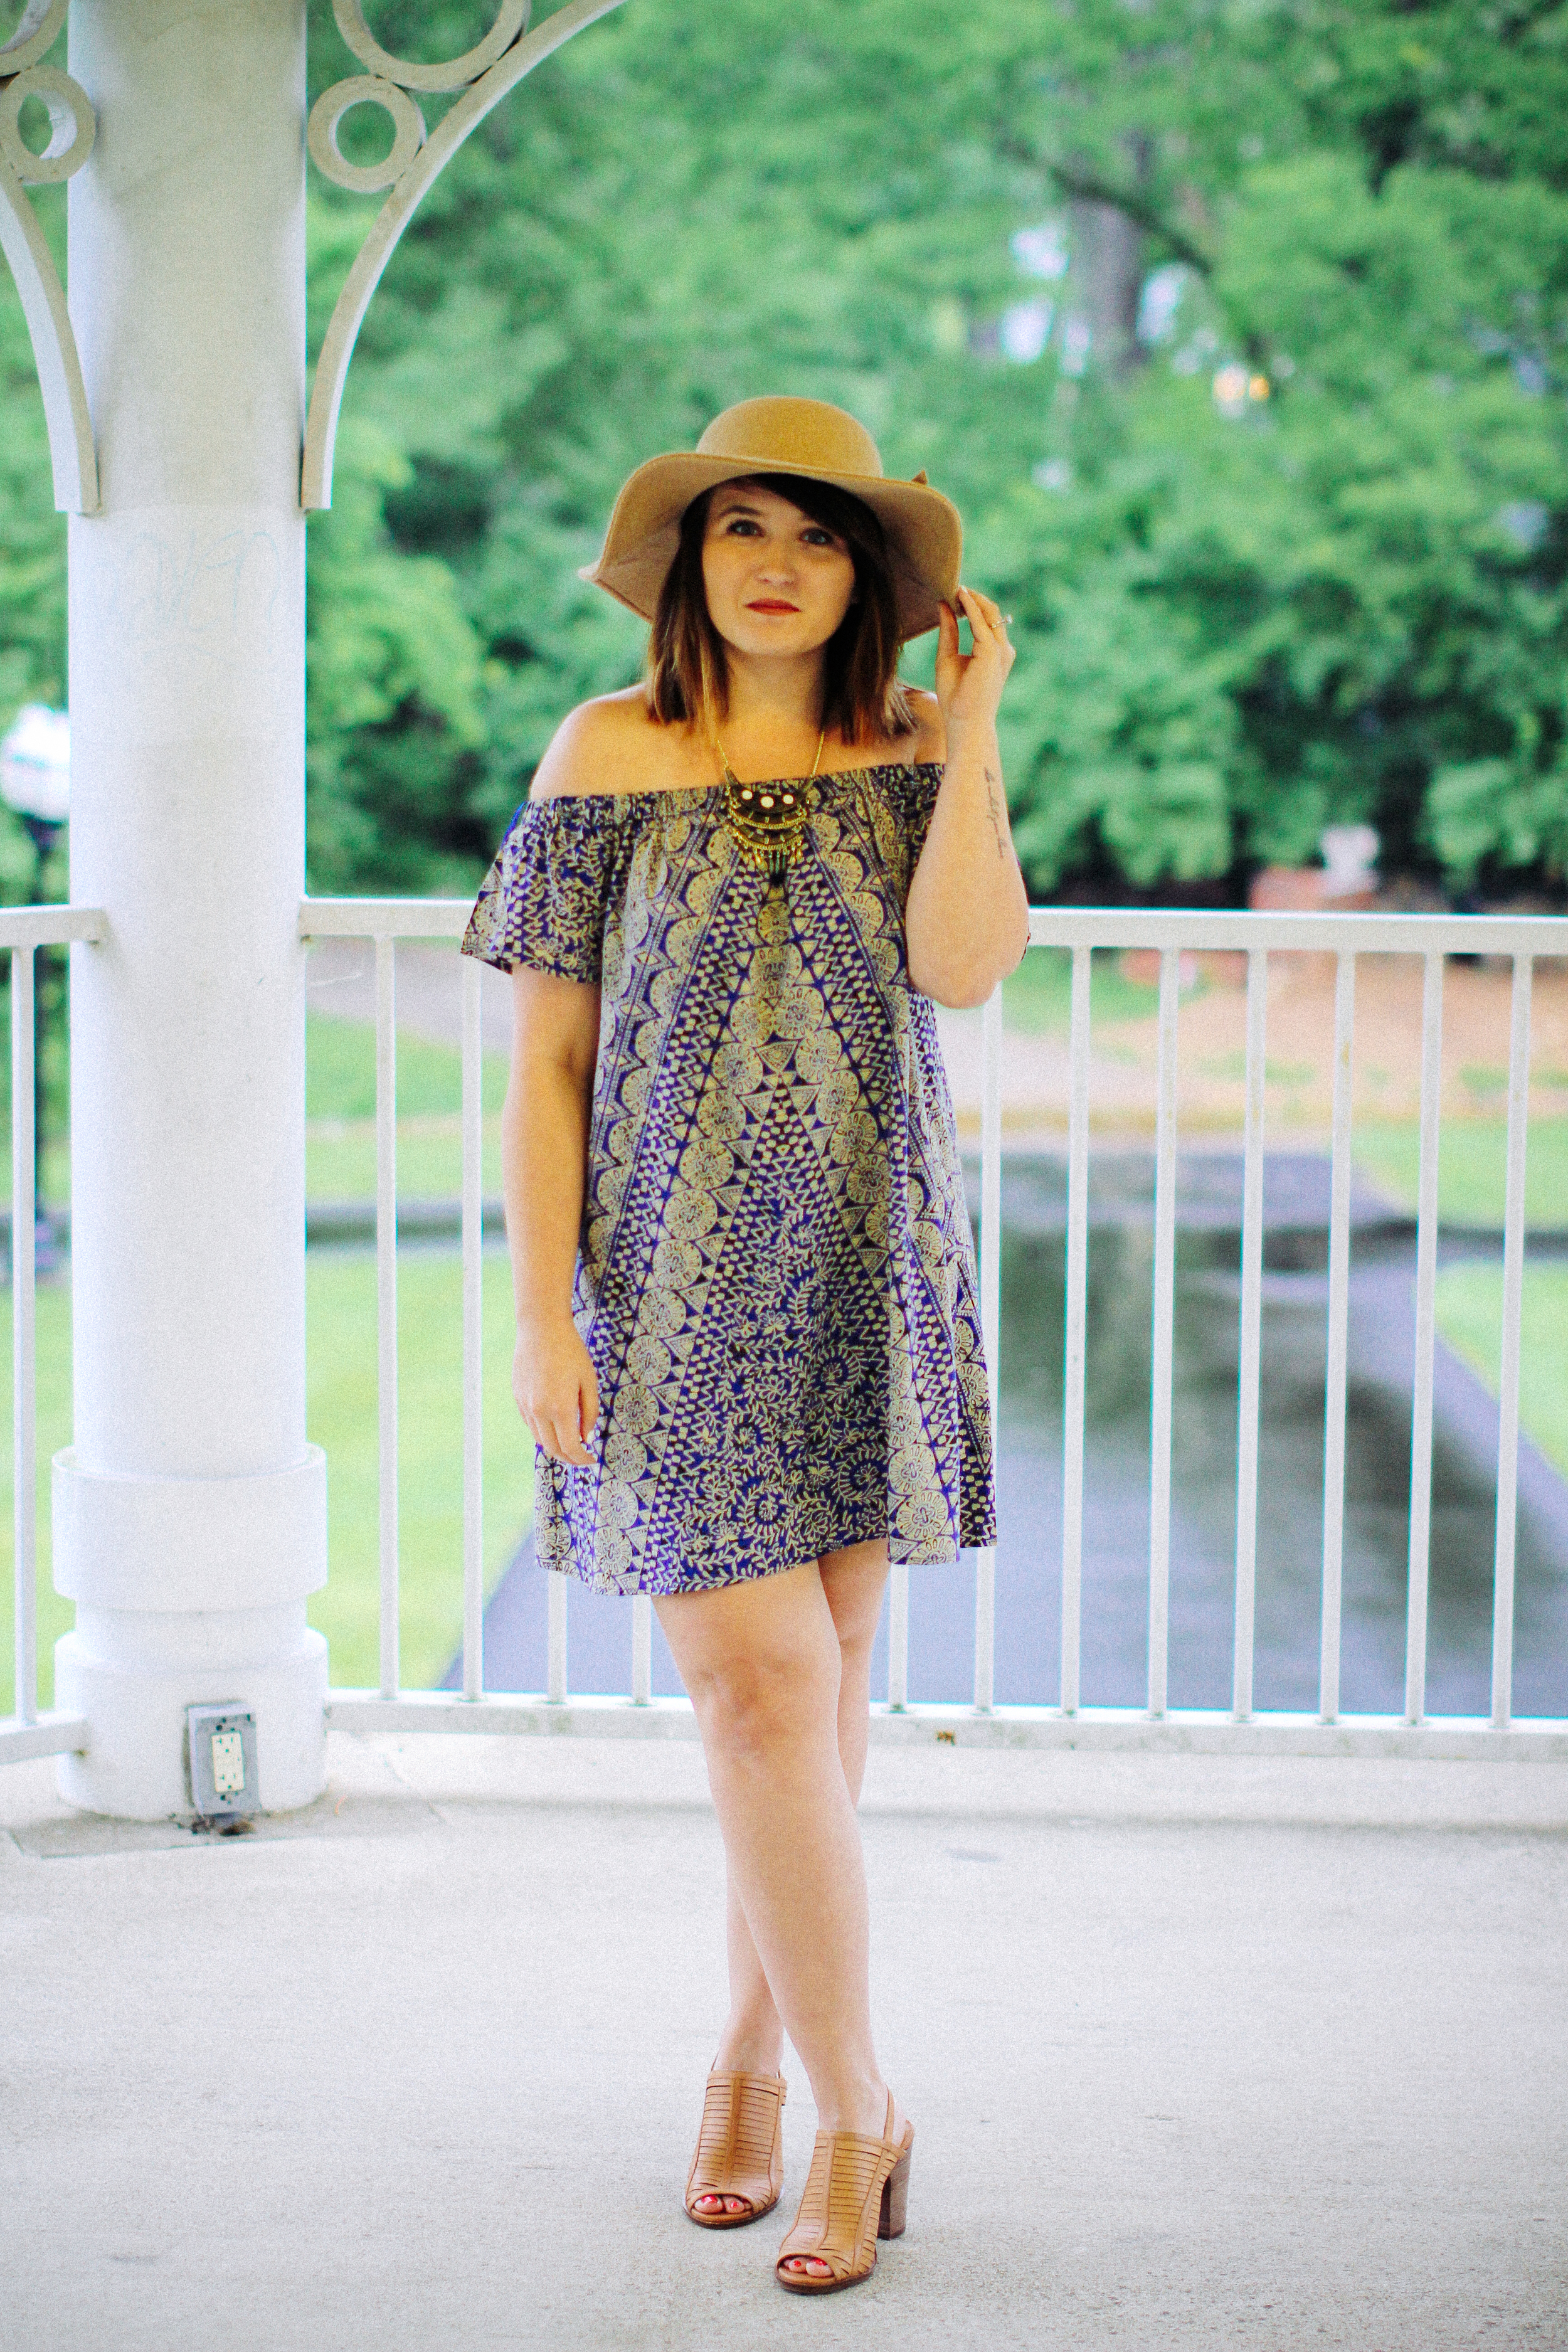 Cold Shoulder Urban Outfitters Dress Summer Style via www.chelceytate.com